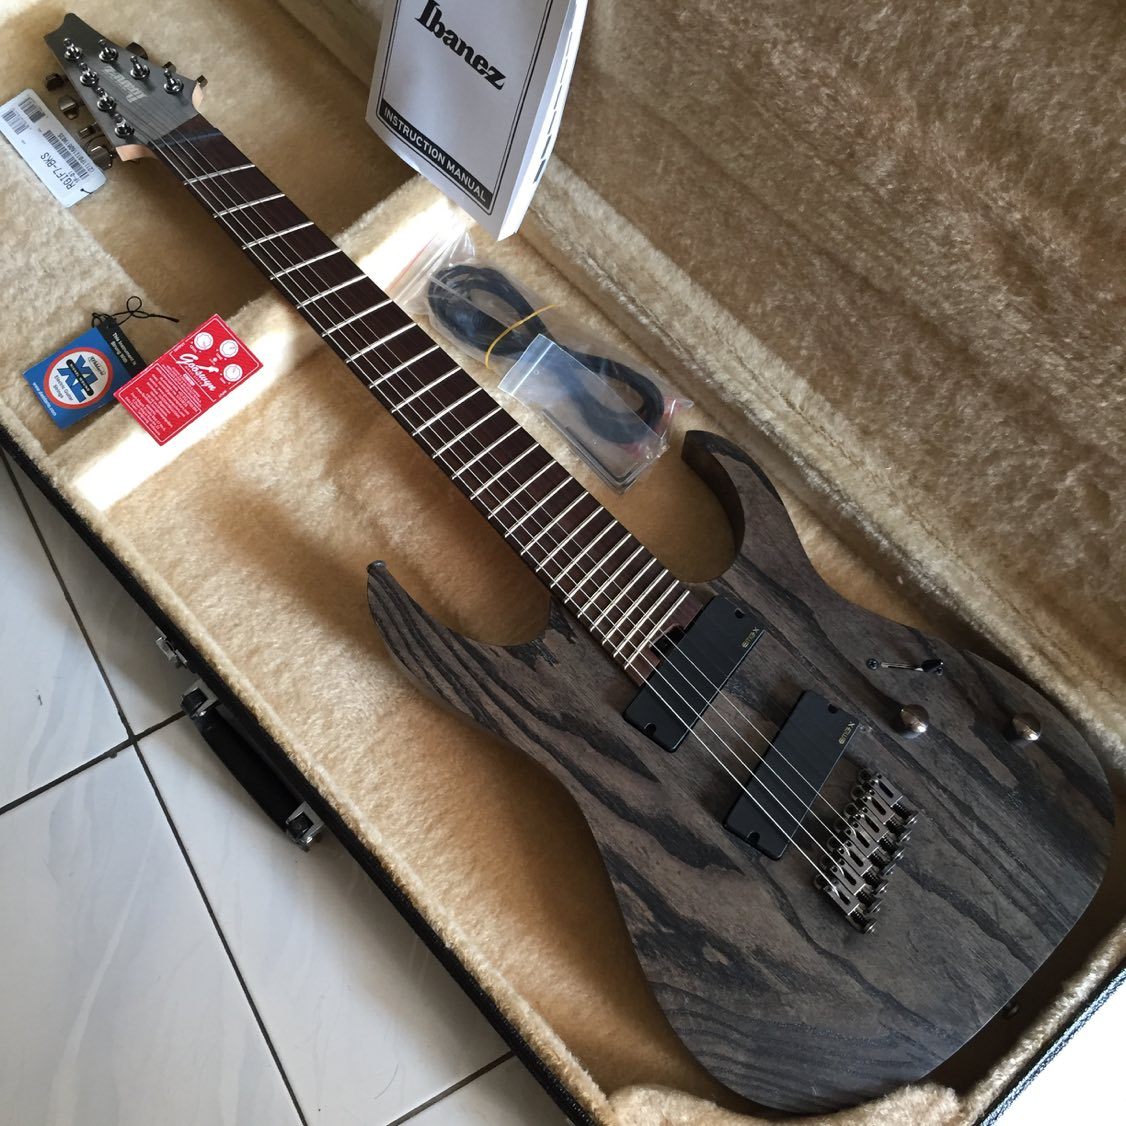 This is a picture of Nerdy Ibanez Iron Label Rgif7